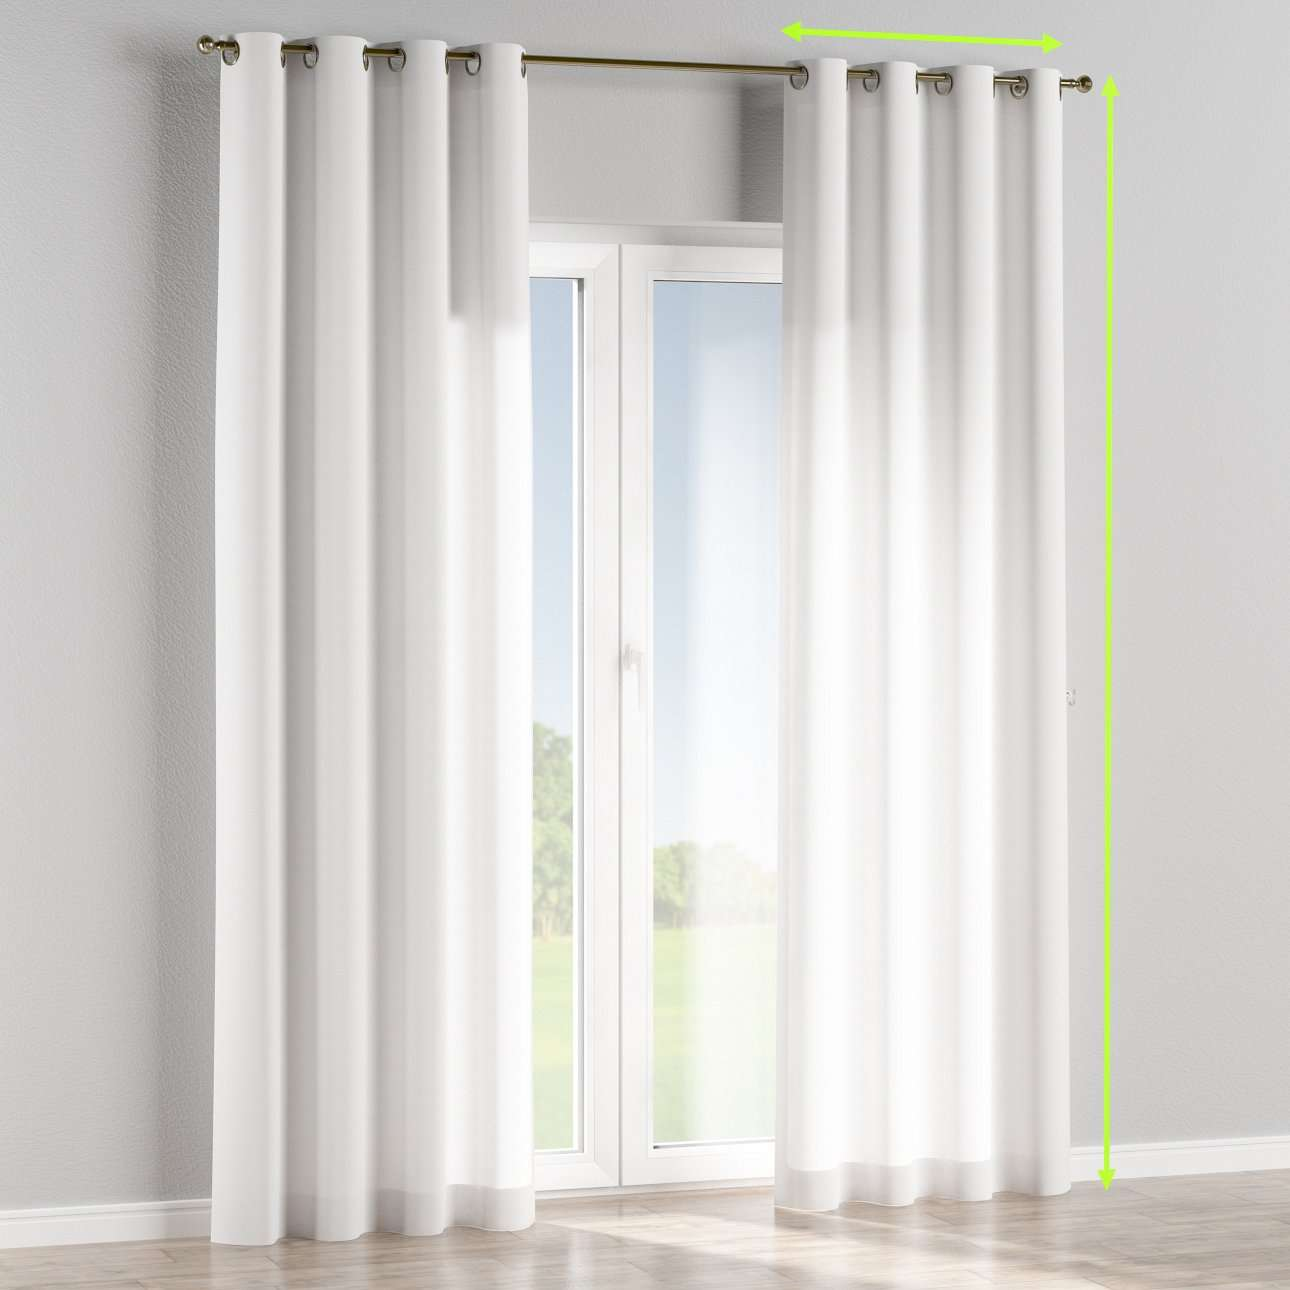 Eyelet lined curtains in collection Jupiter, fabric: 127-01